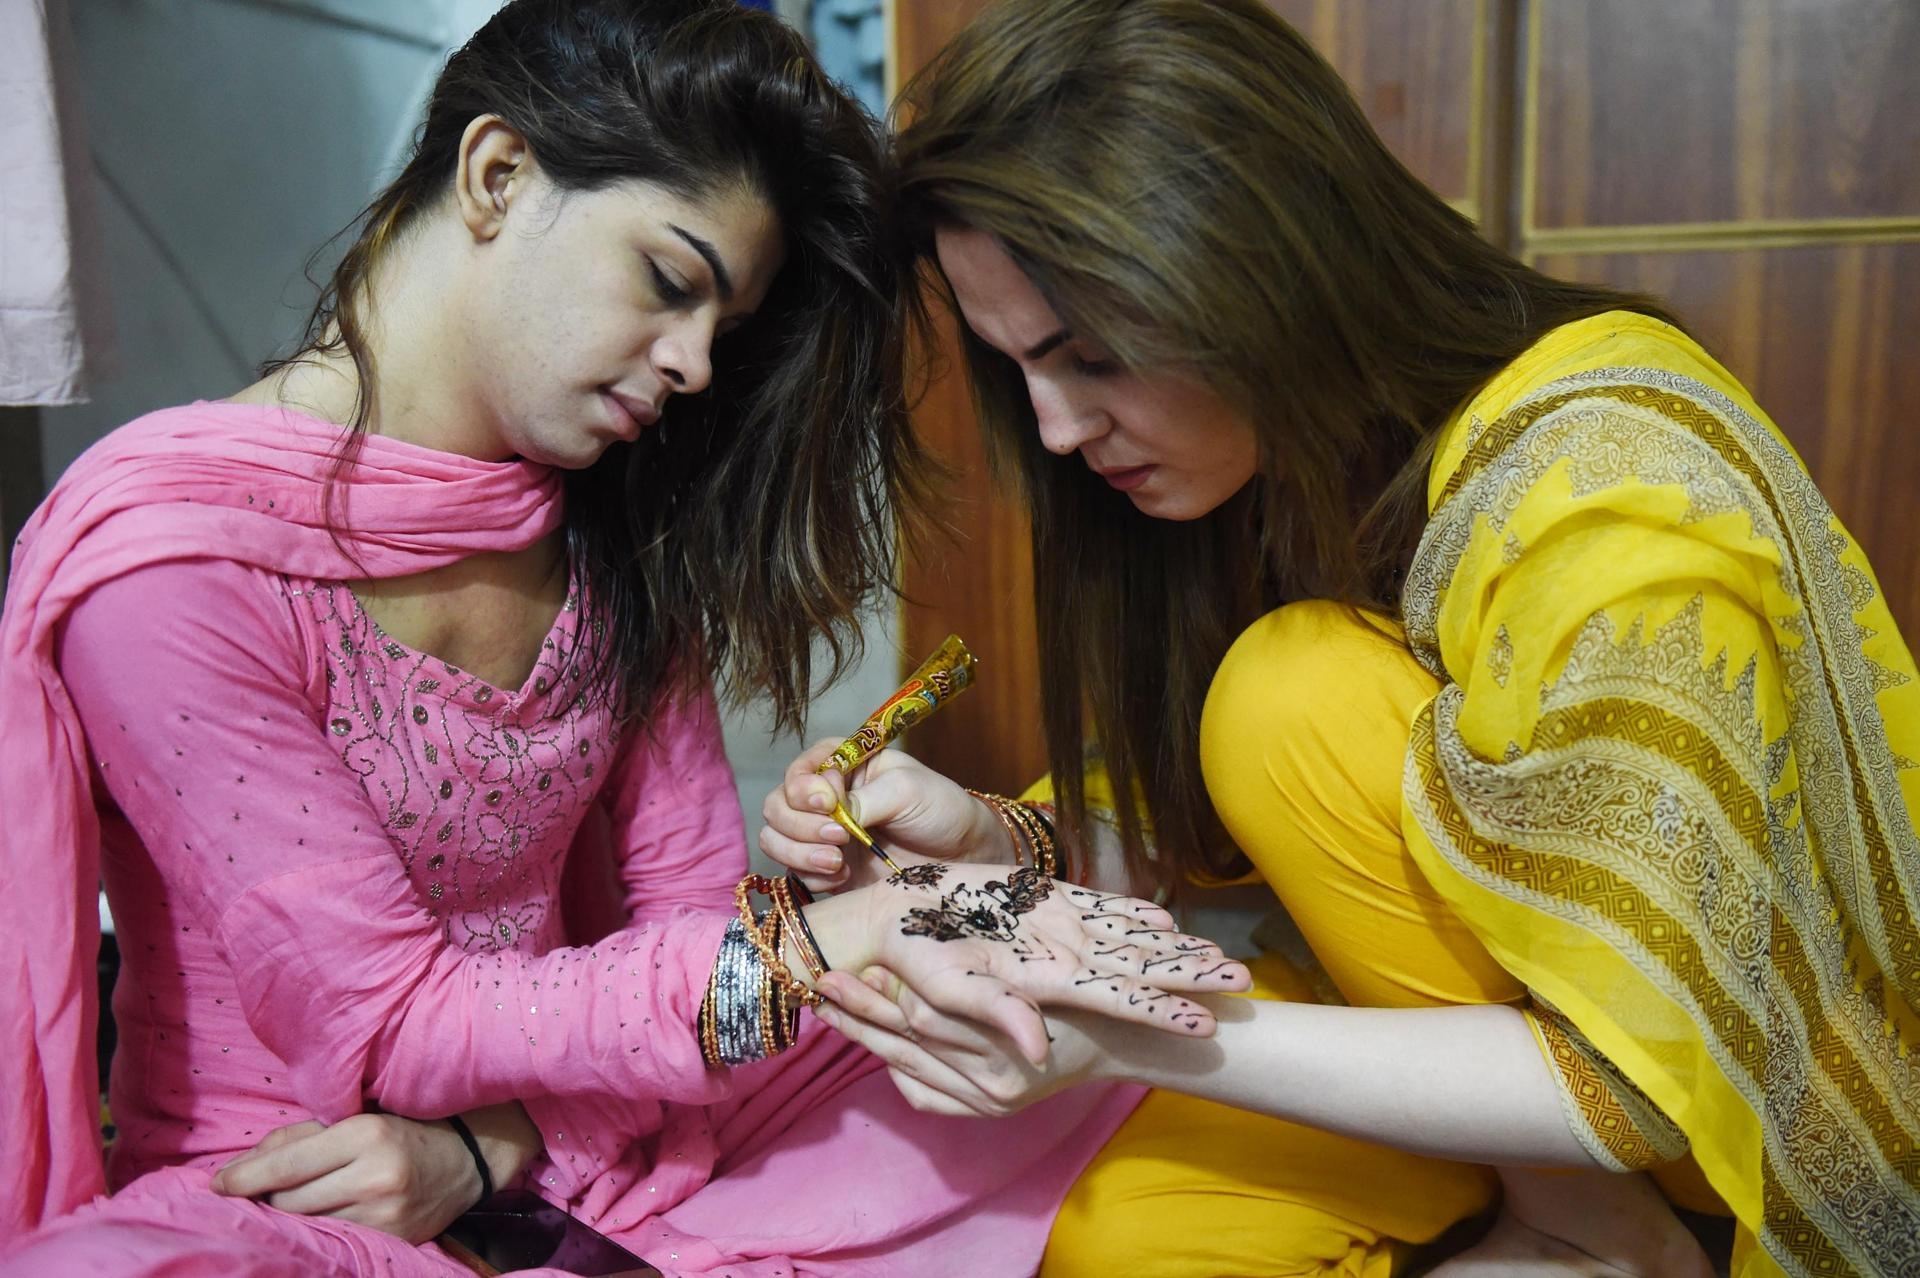 Pakistani transgenders decorate hands with henna ahead of the Eid al-Fitr festival in Peshawar on July 5, 2016. Millions of Muslims around the world prepare to celebrate the Eid al-Fitr feast marking the end of the fasting month of Ramadan. / AFP PHOTO / A MAJEEDA MAJEED/AFP/Getty Images